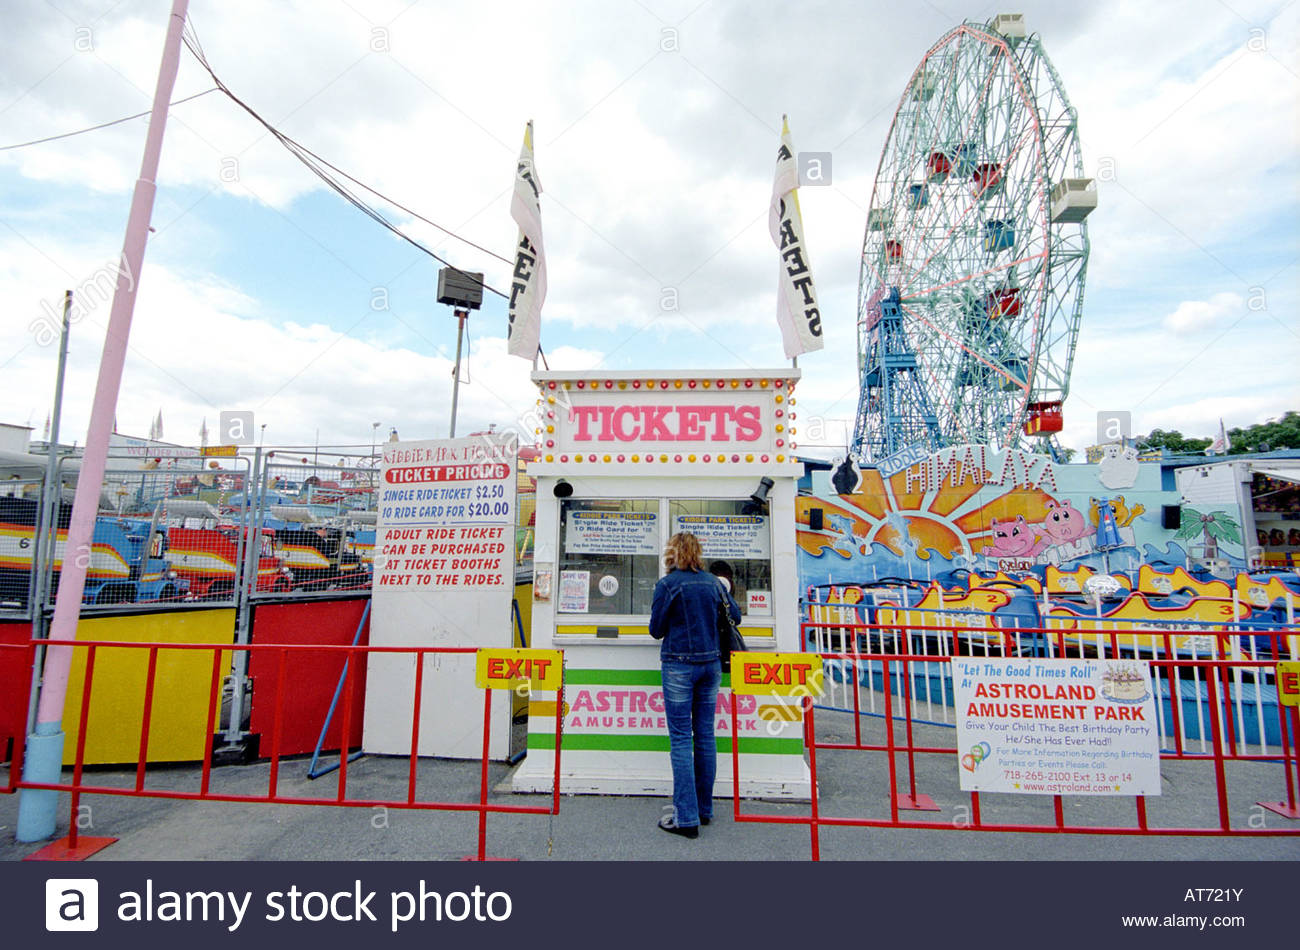 Coney Island Amusement Park Ticket Prices